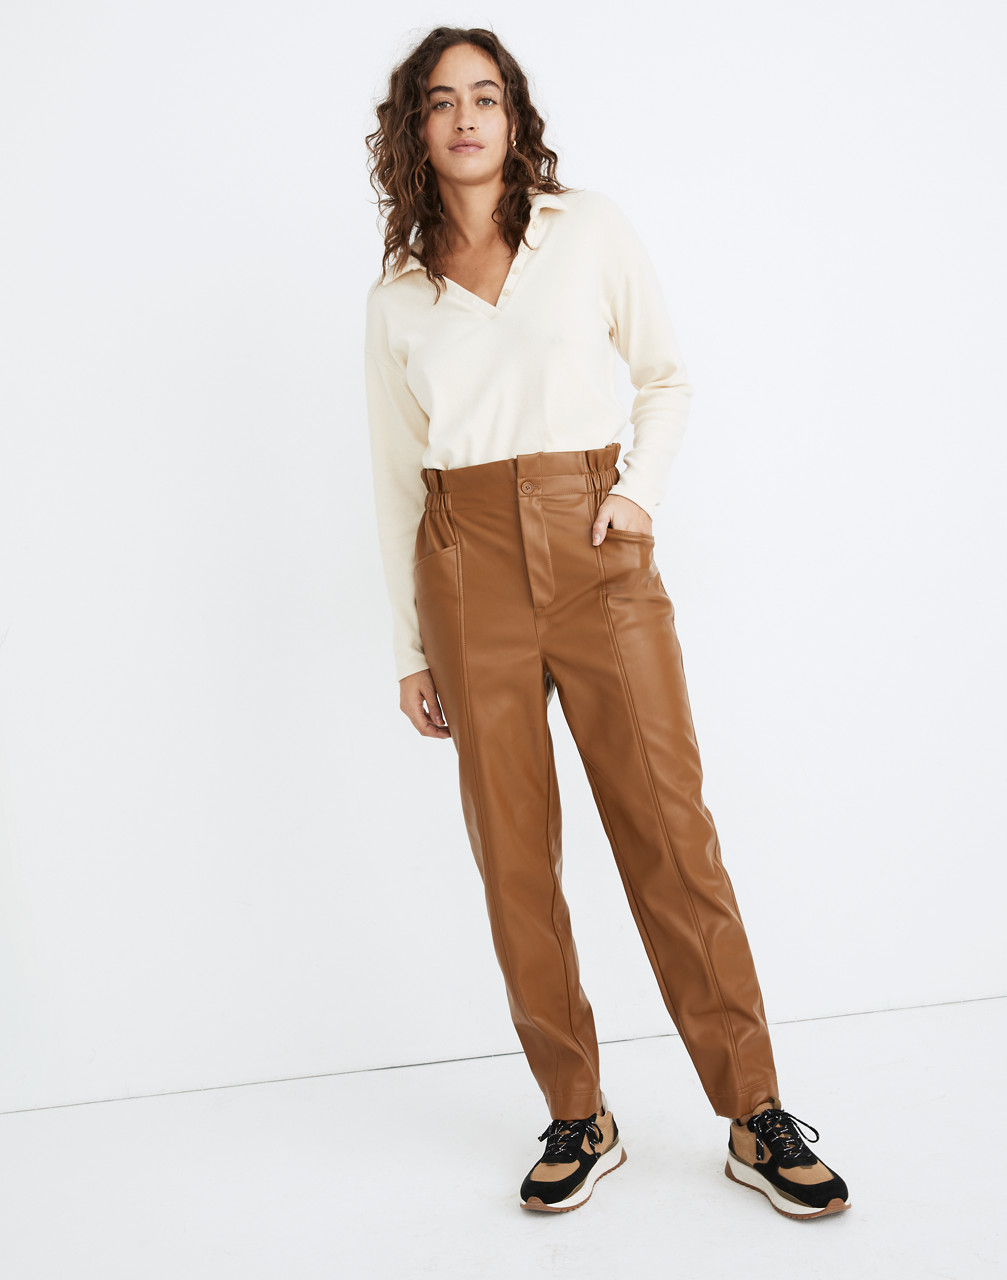 80s Jeans, Pants, Leggings Vegan Leather Pull-On Paperbag Pants $138.00 AT vintagedancer.com